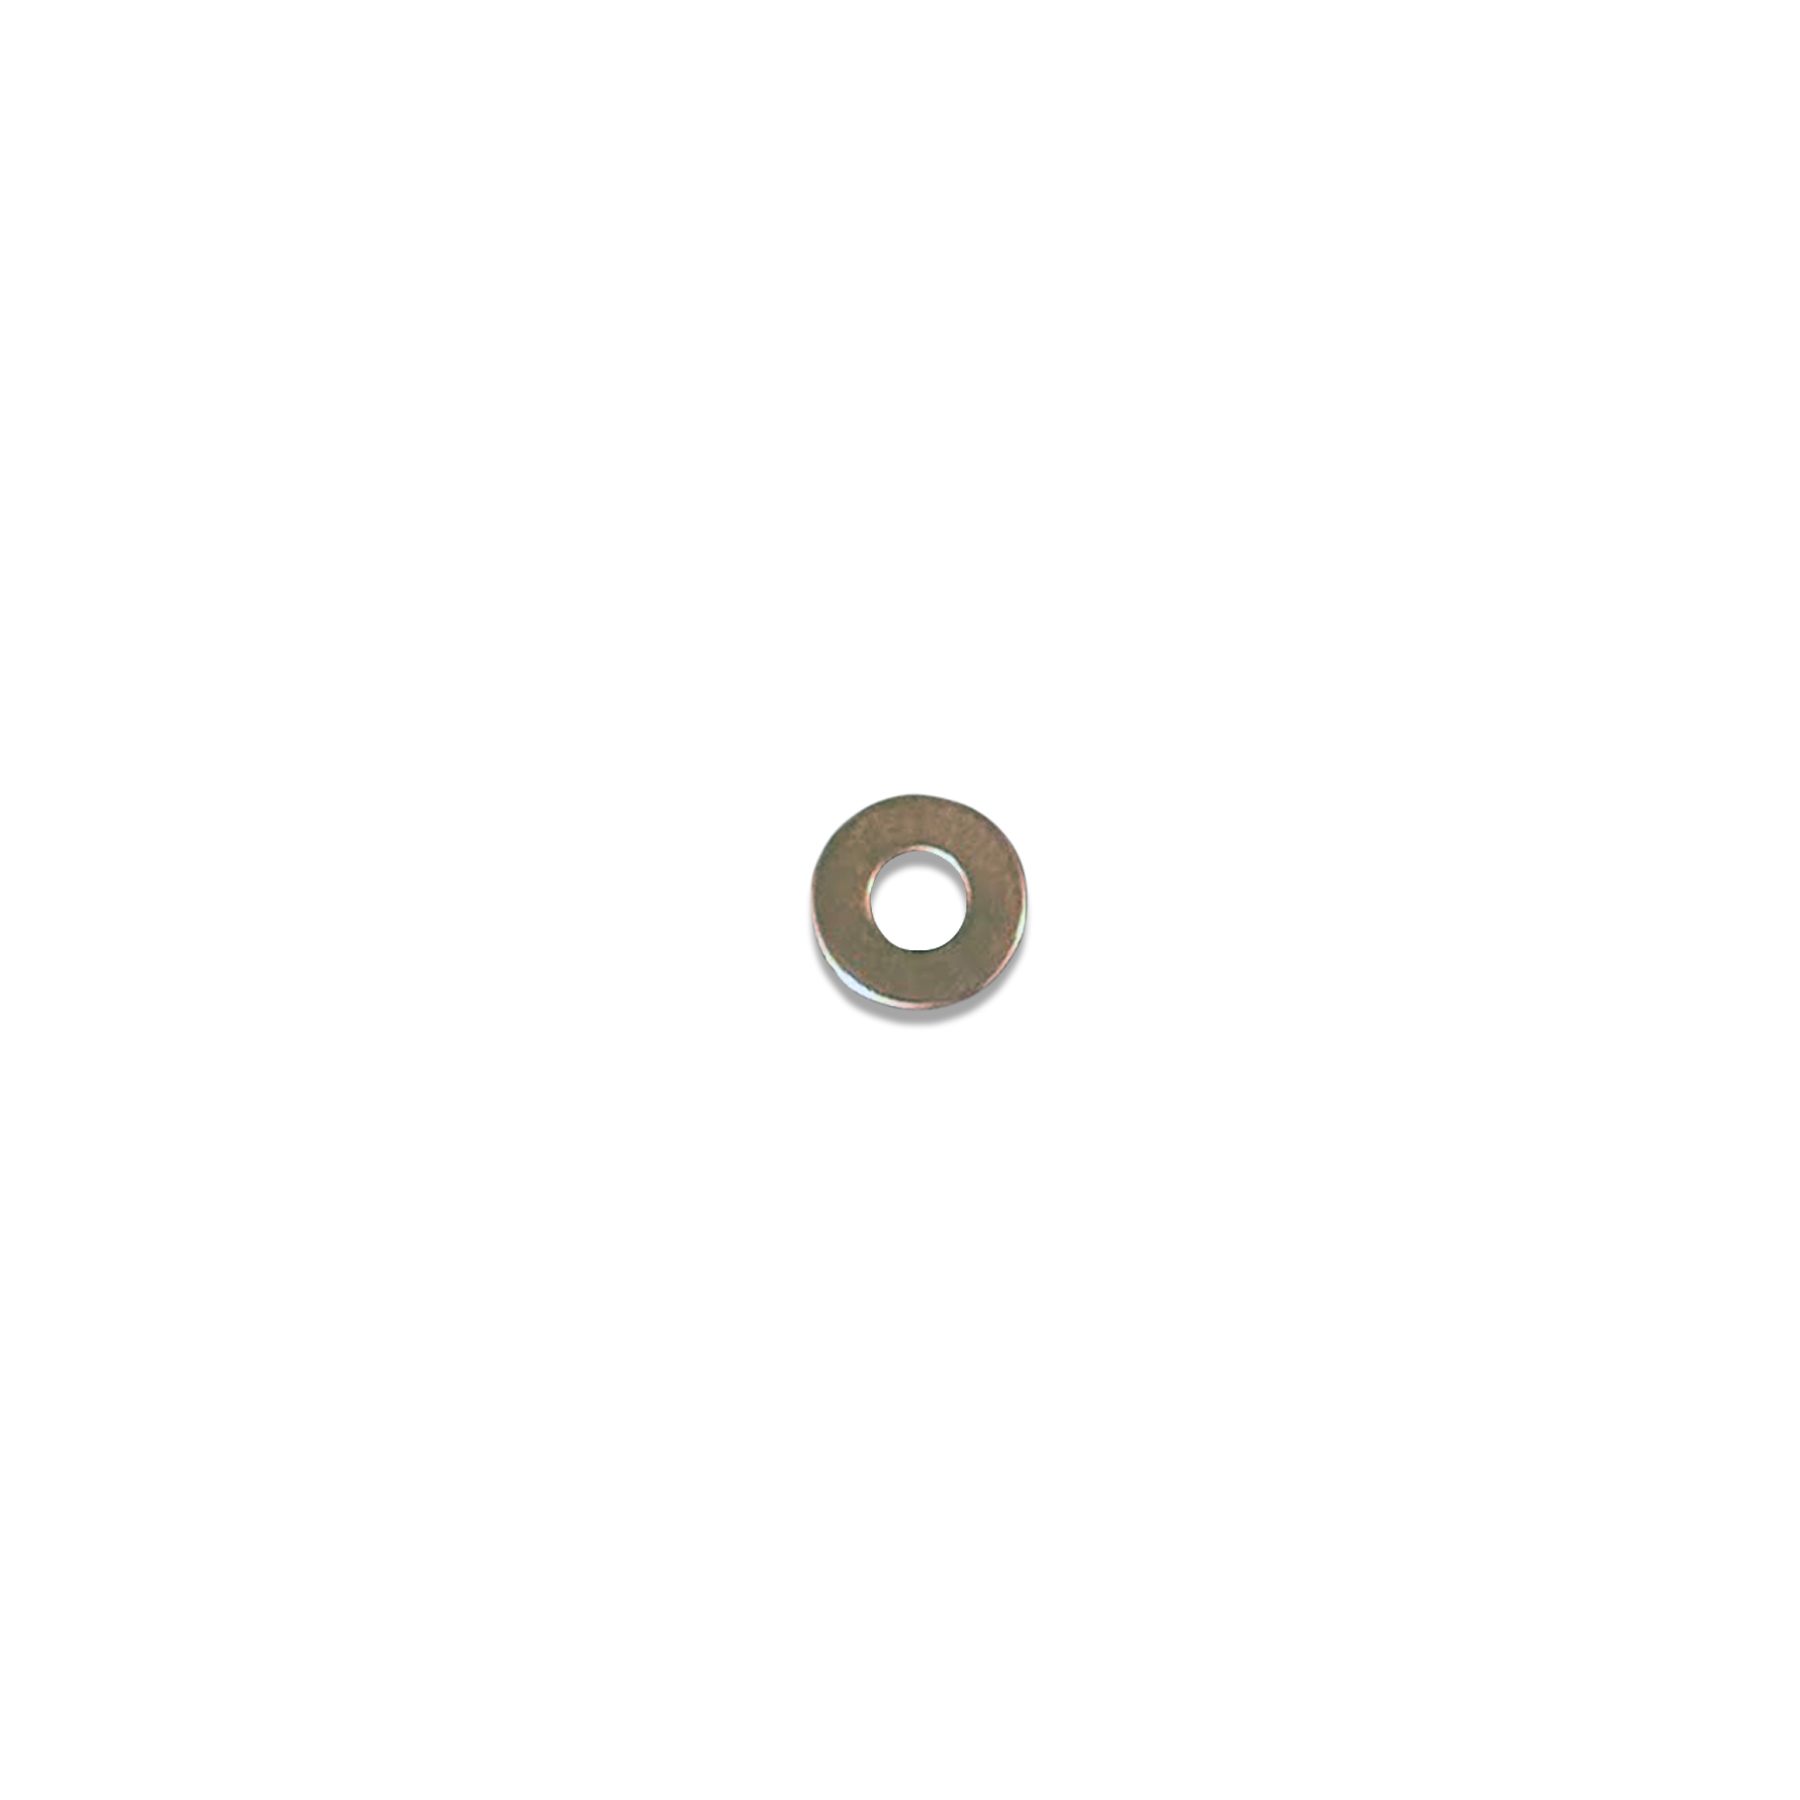 CONS Stainless Steel Flat Washer 9/32 ID x 5/8 OD